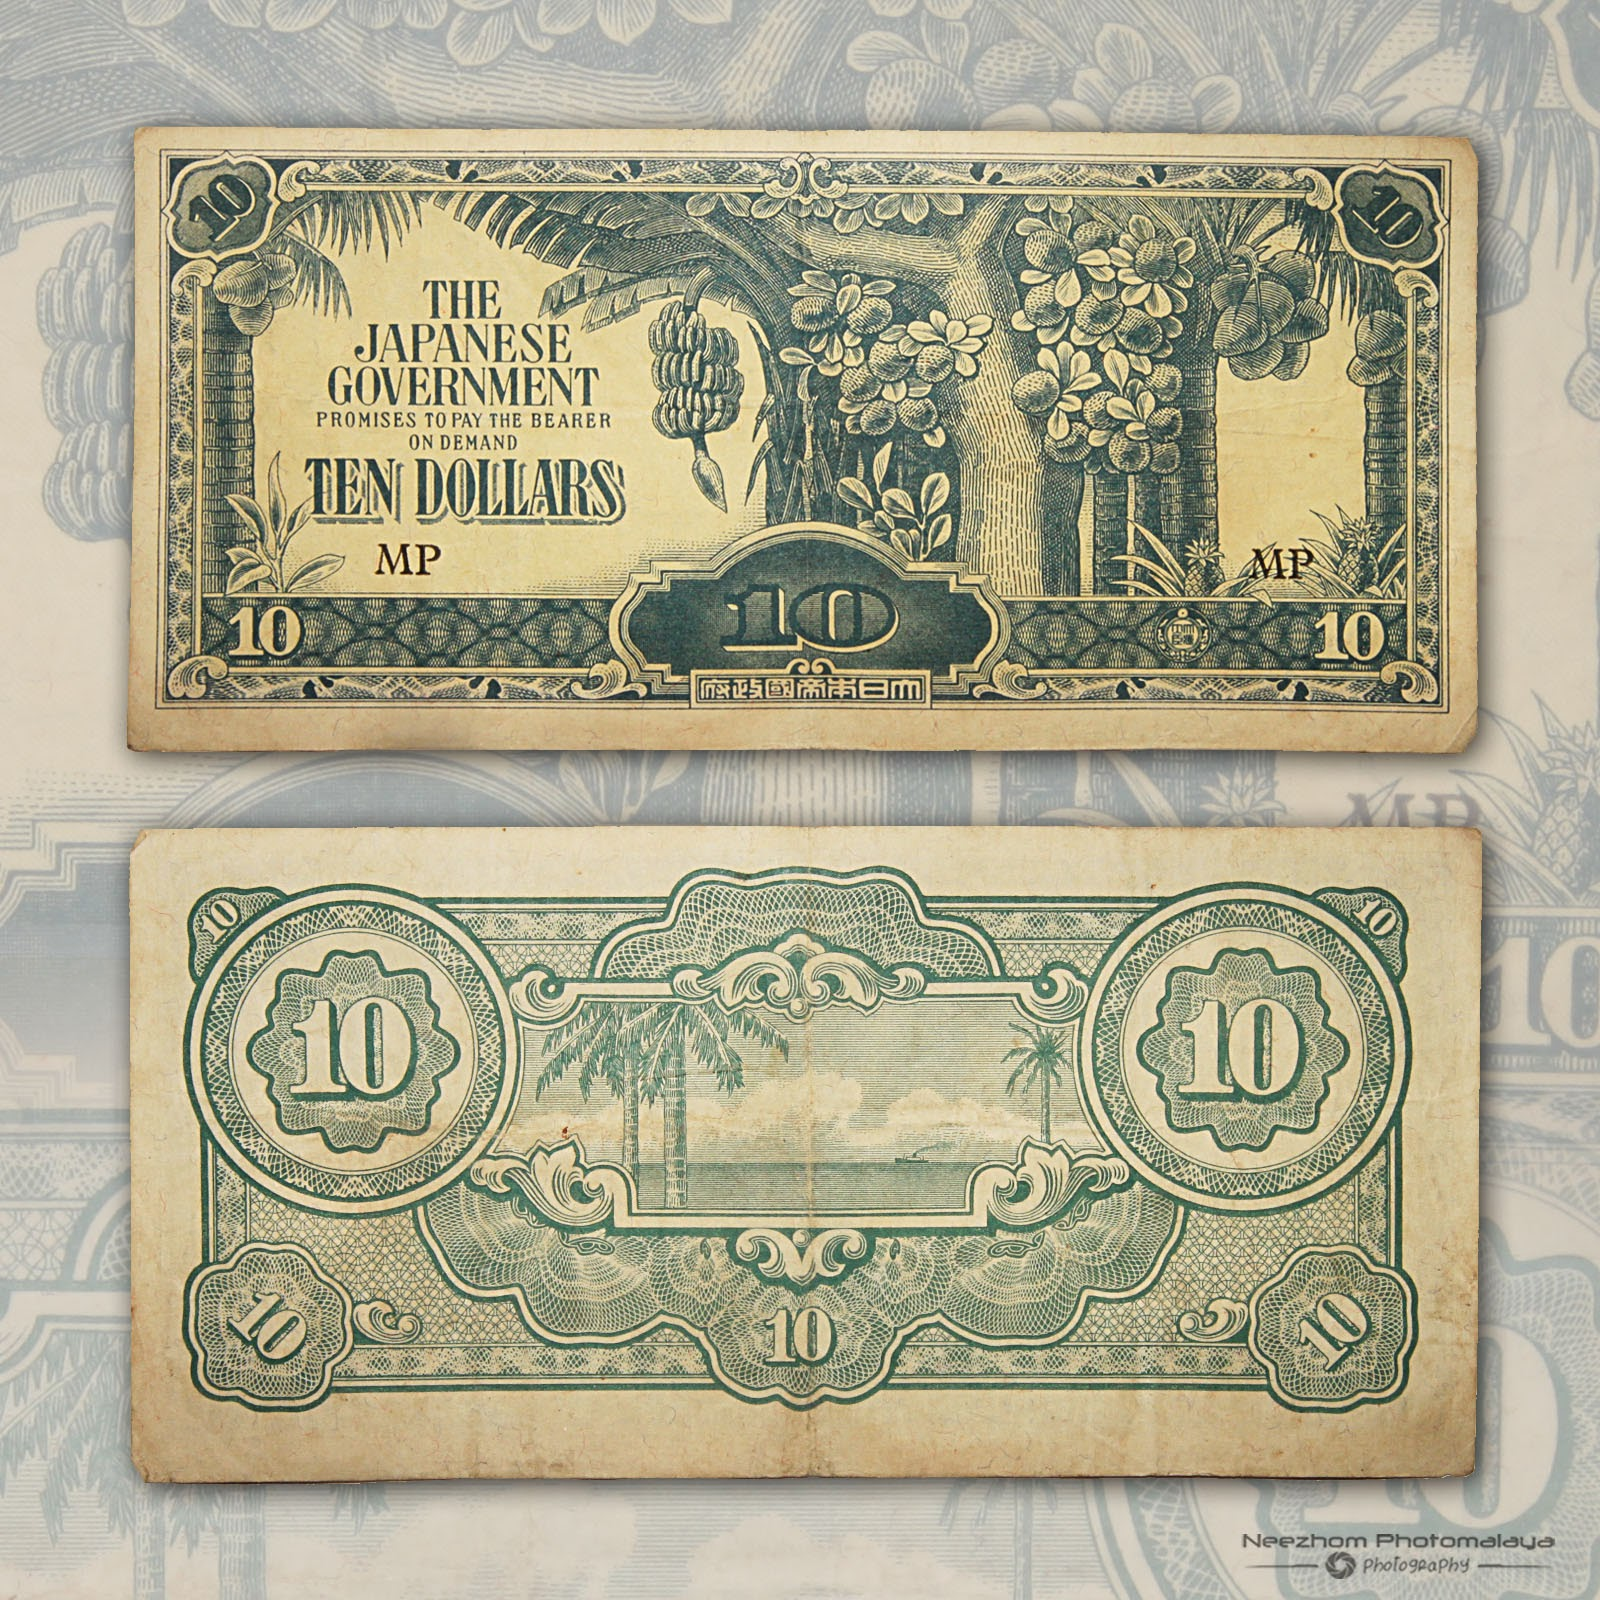 10 Dollars Japanese Occupation Malaya paper money